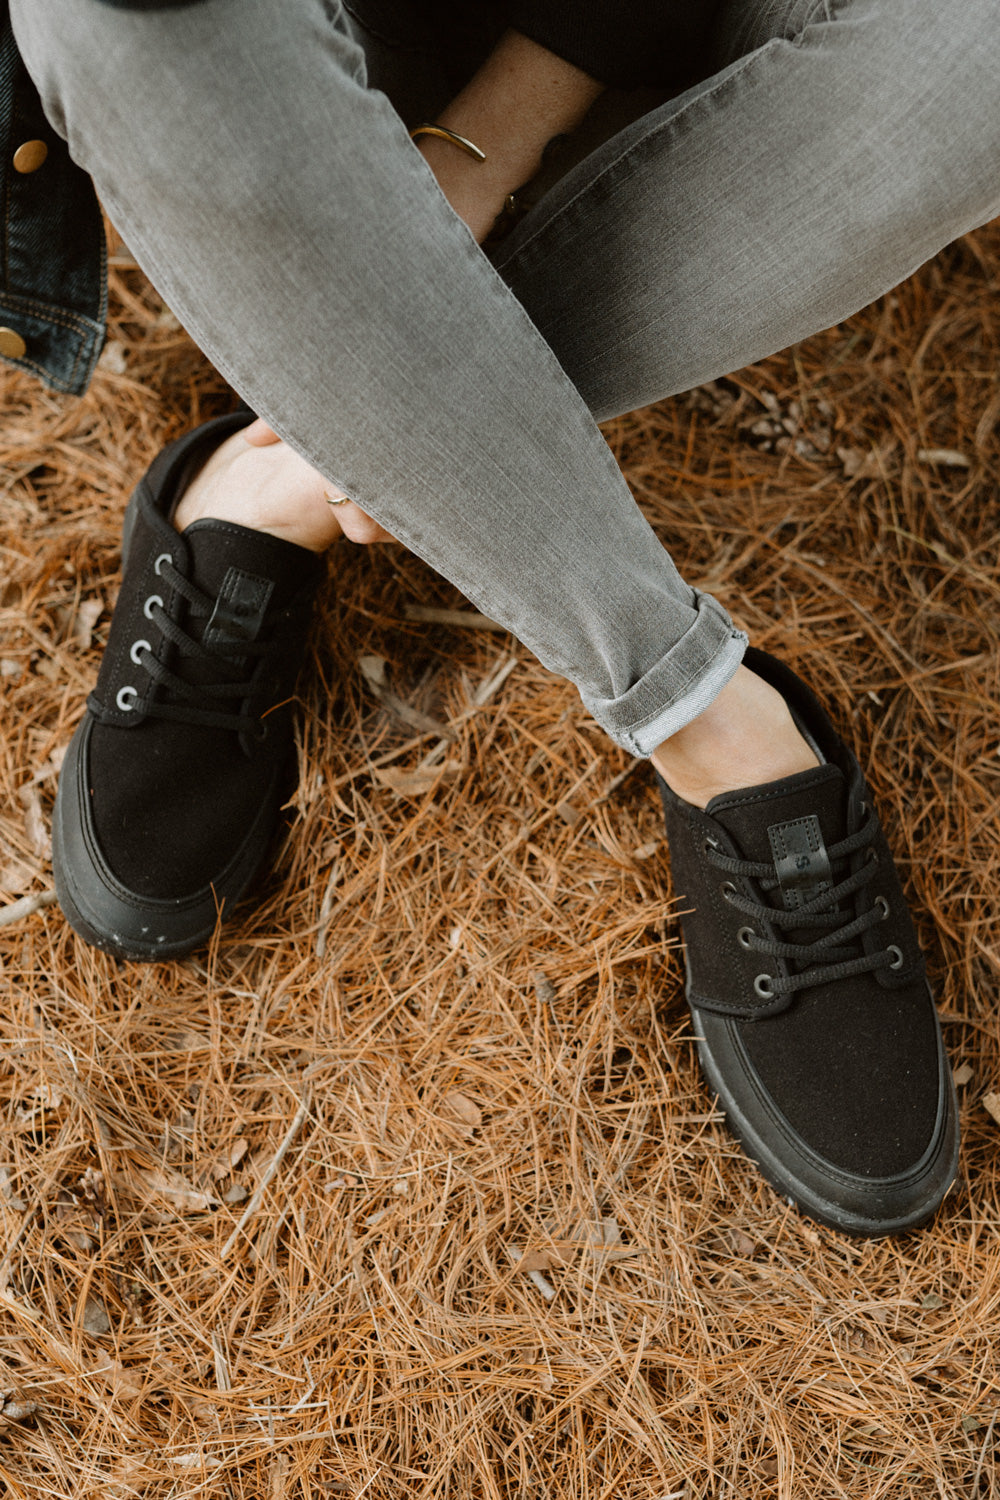 a close shot of the so ill smoke wash out women's denim in a forested area